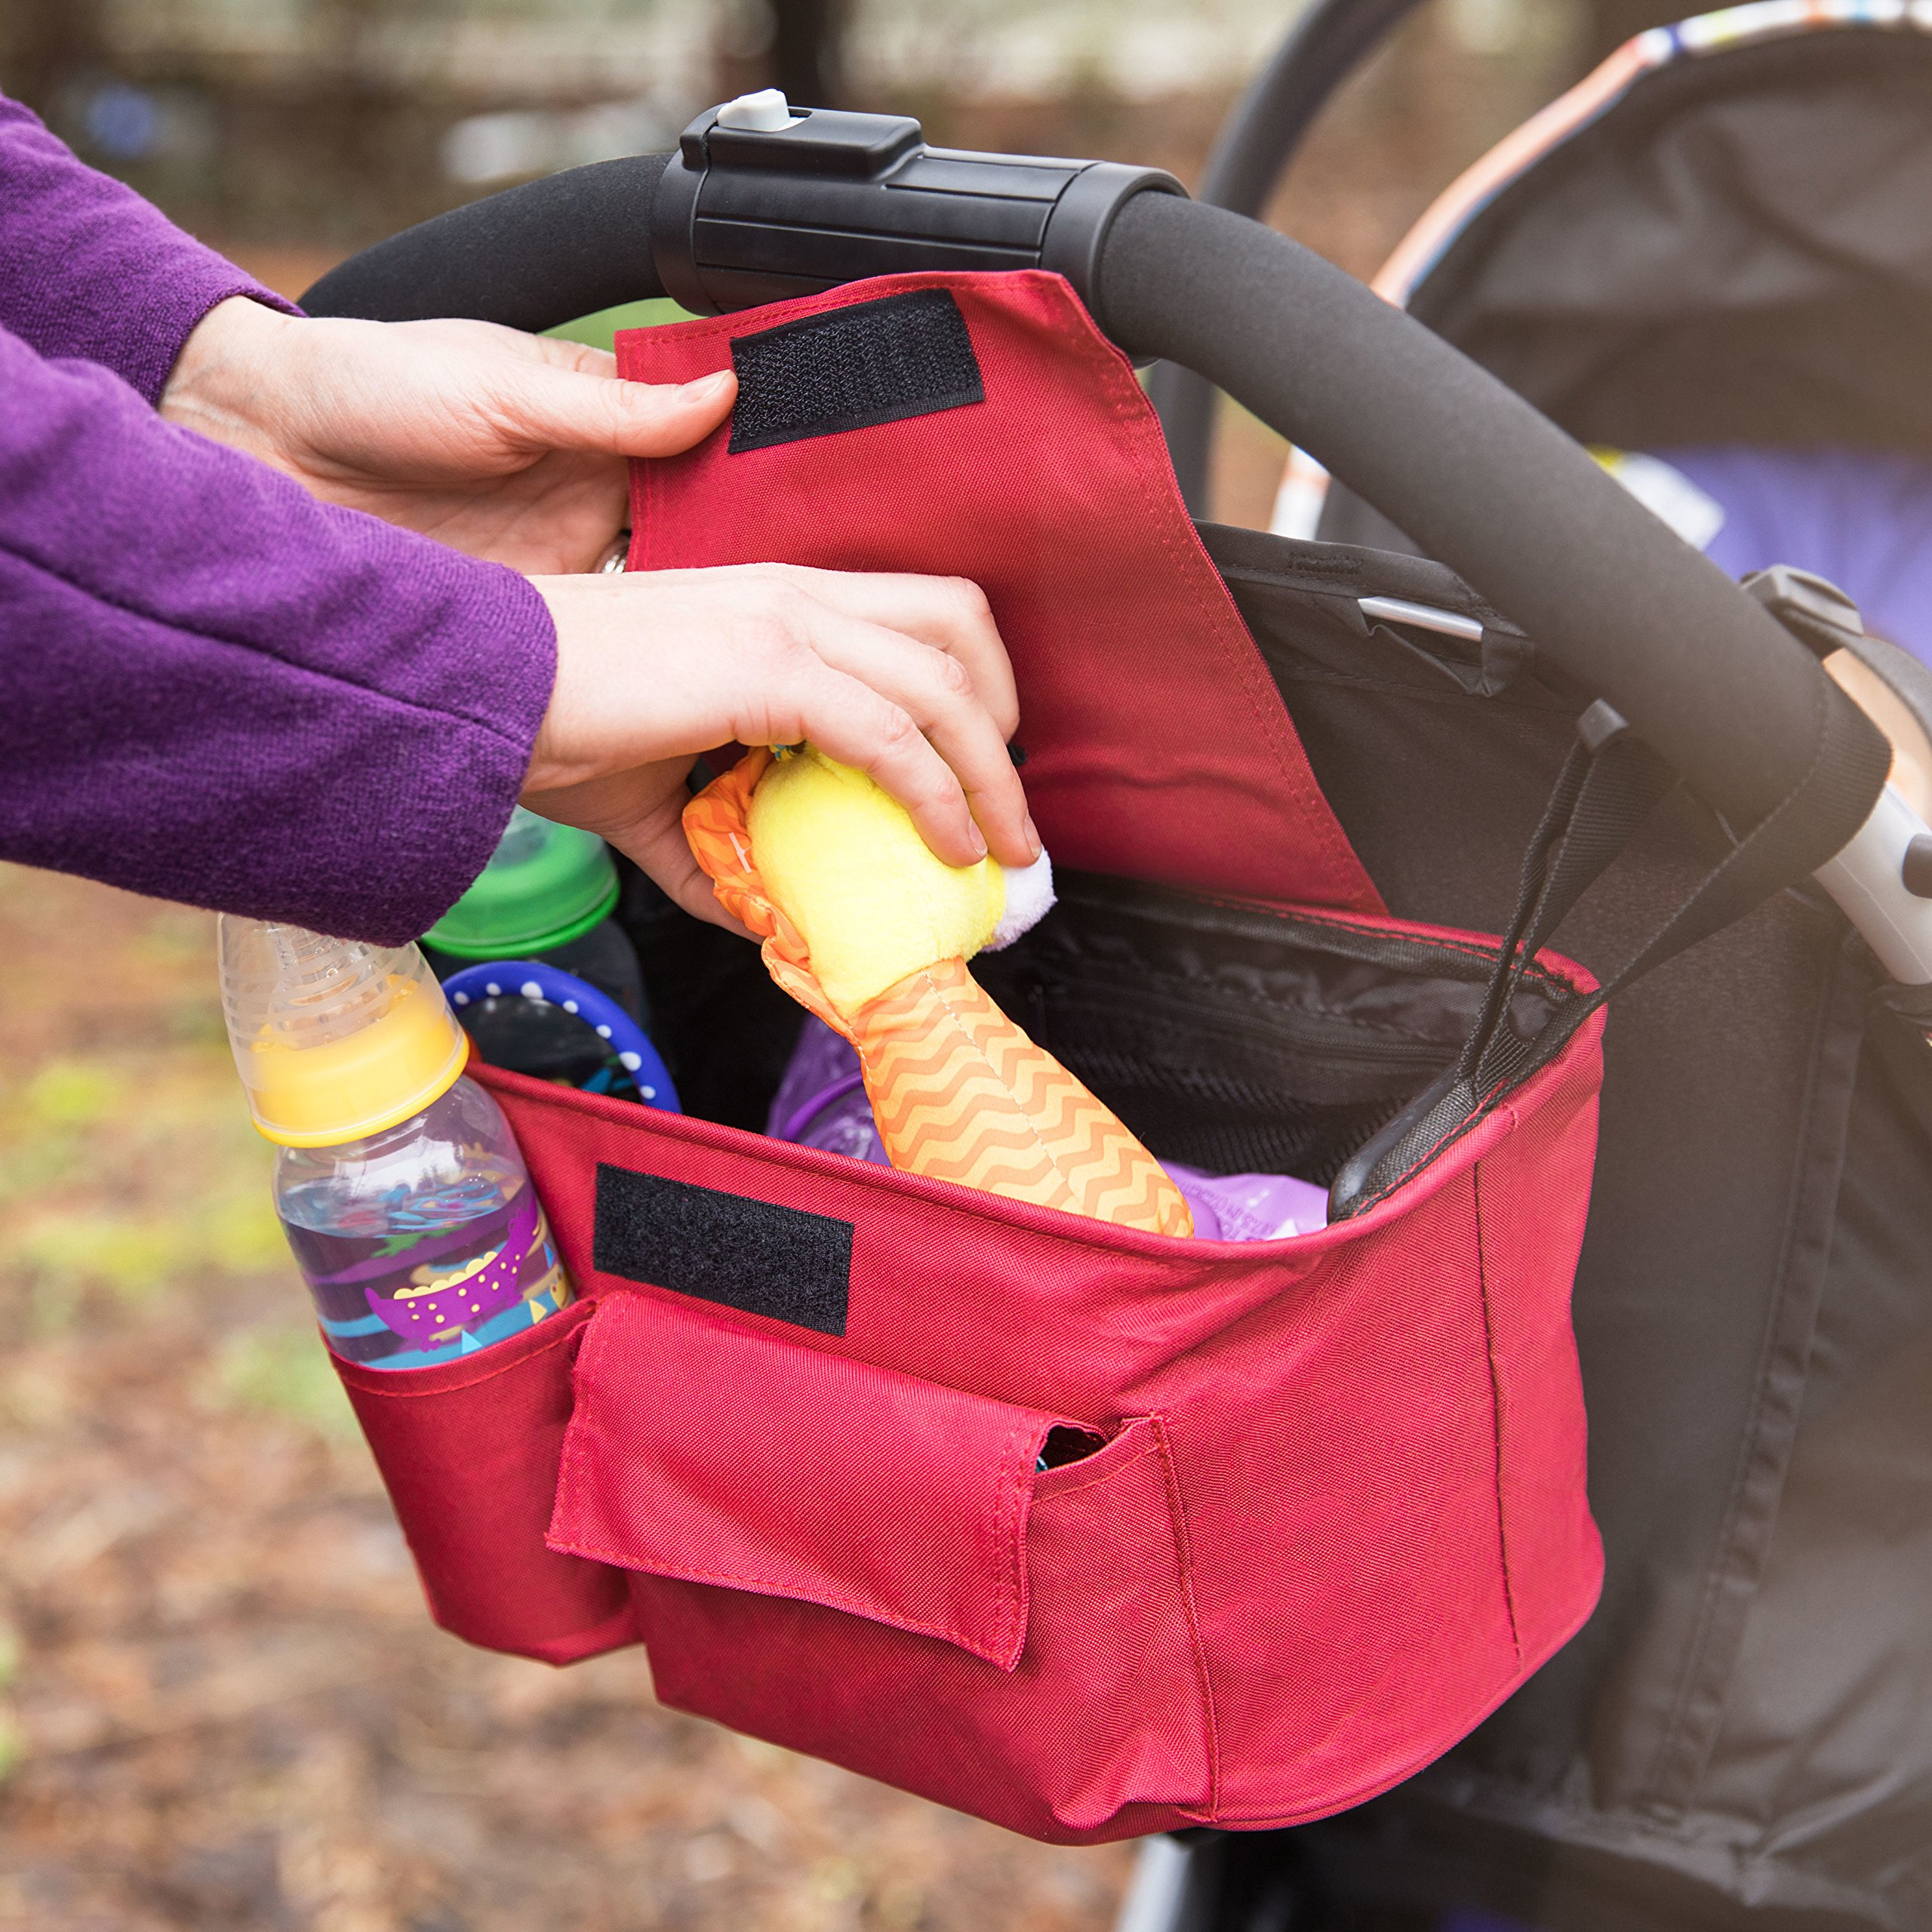 Universal Stroller Organizer Bag – Baby Stroller Bags with Large Storage Space for Diapers, iPhone, Wallet, Toys, Snacks  Stroller Caddy Bag with Insulated Cup Holders  One Size Fits All - Lightweight